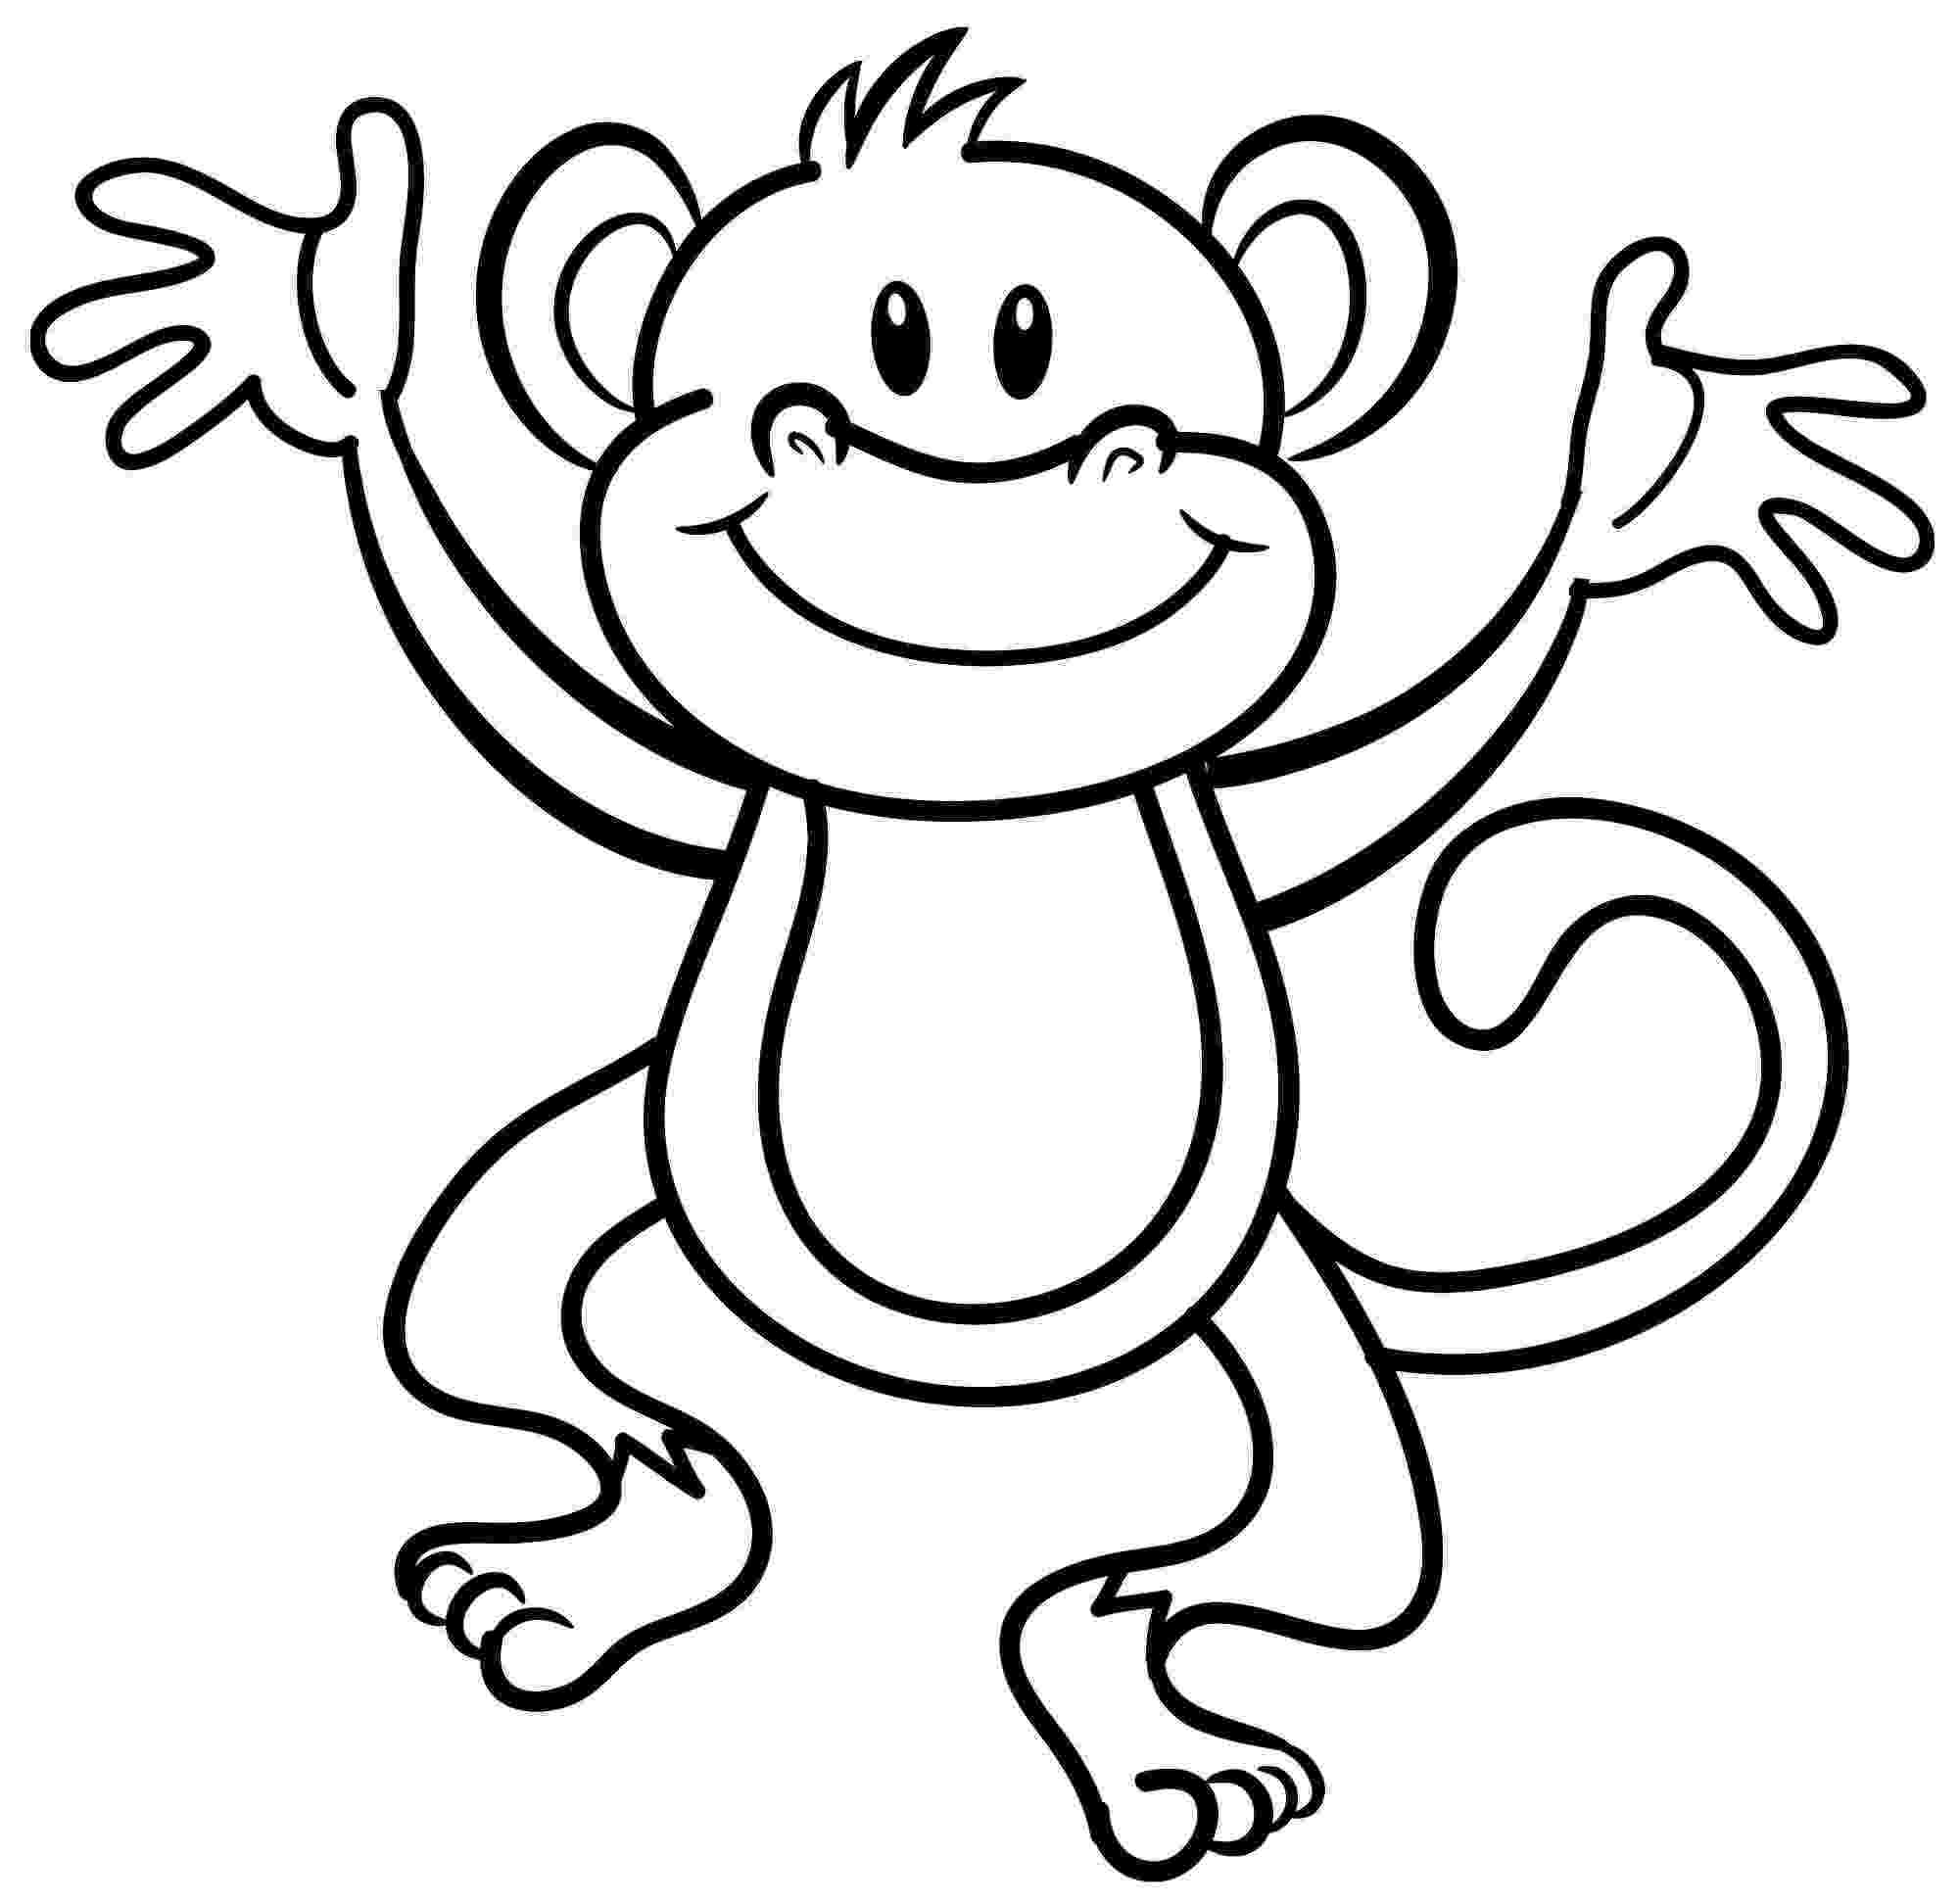 monkey cartoon coloring cute monkey coloring pages to download and print for free monkey coloring cartoon